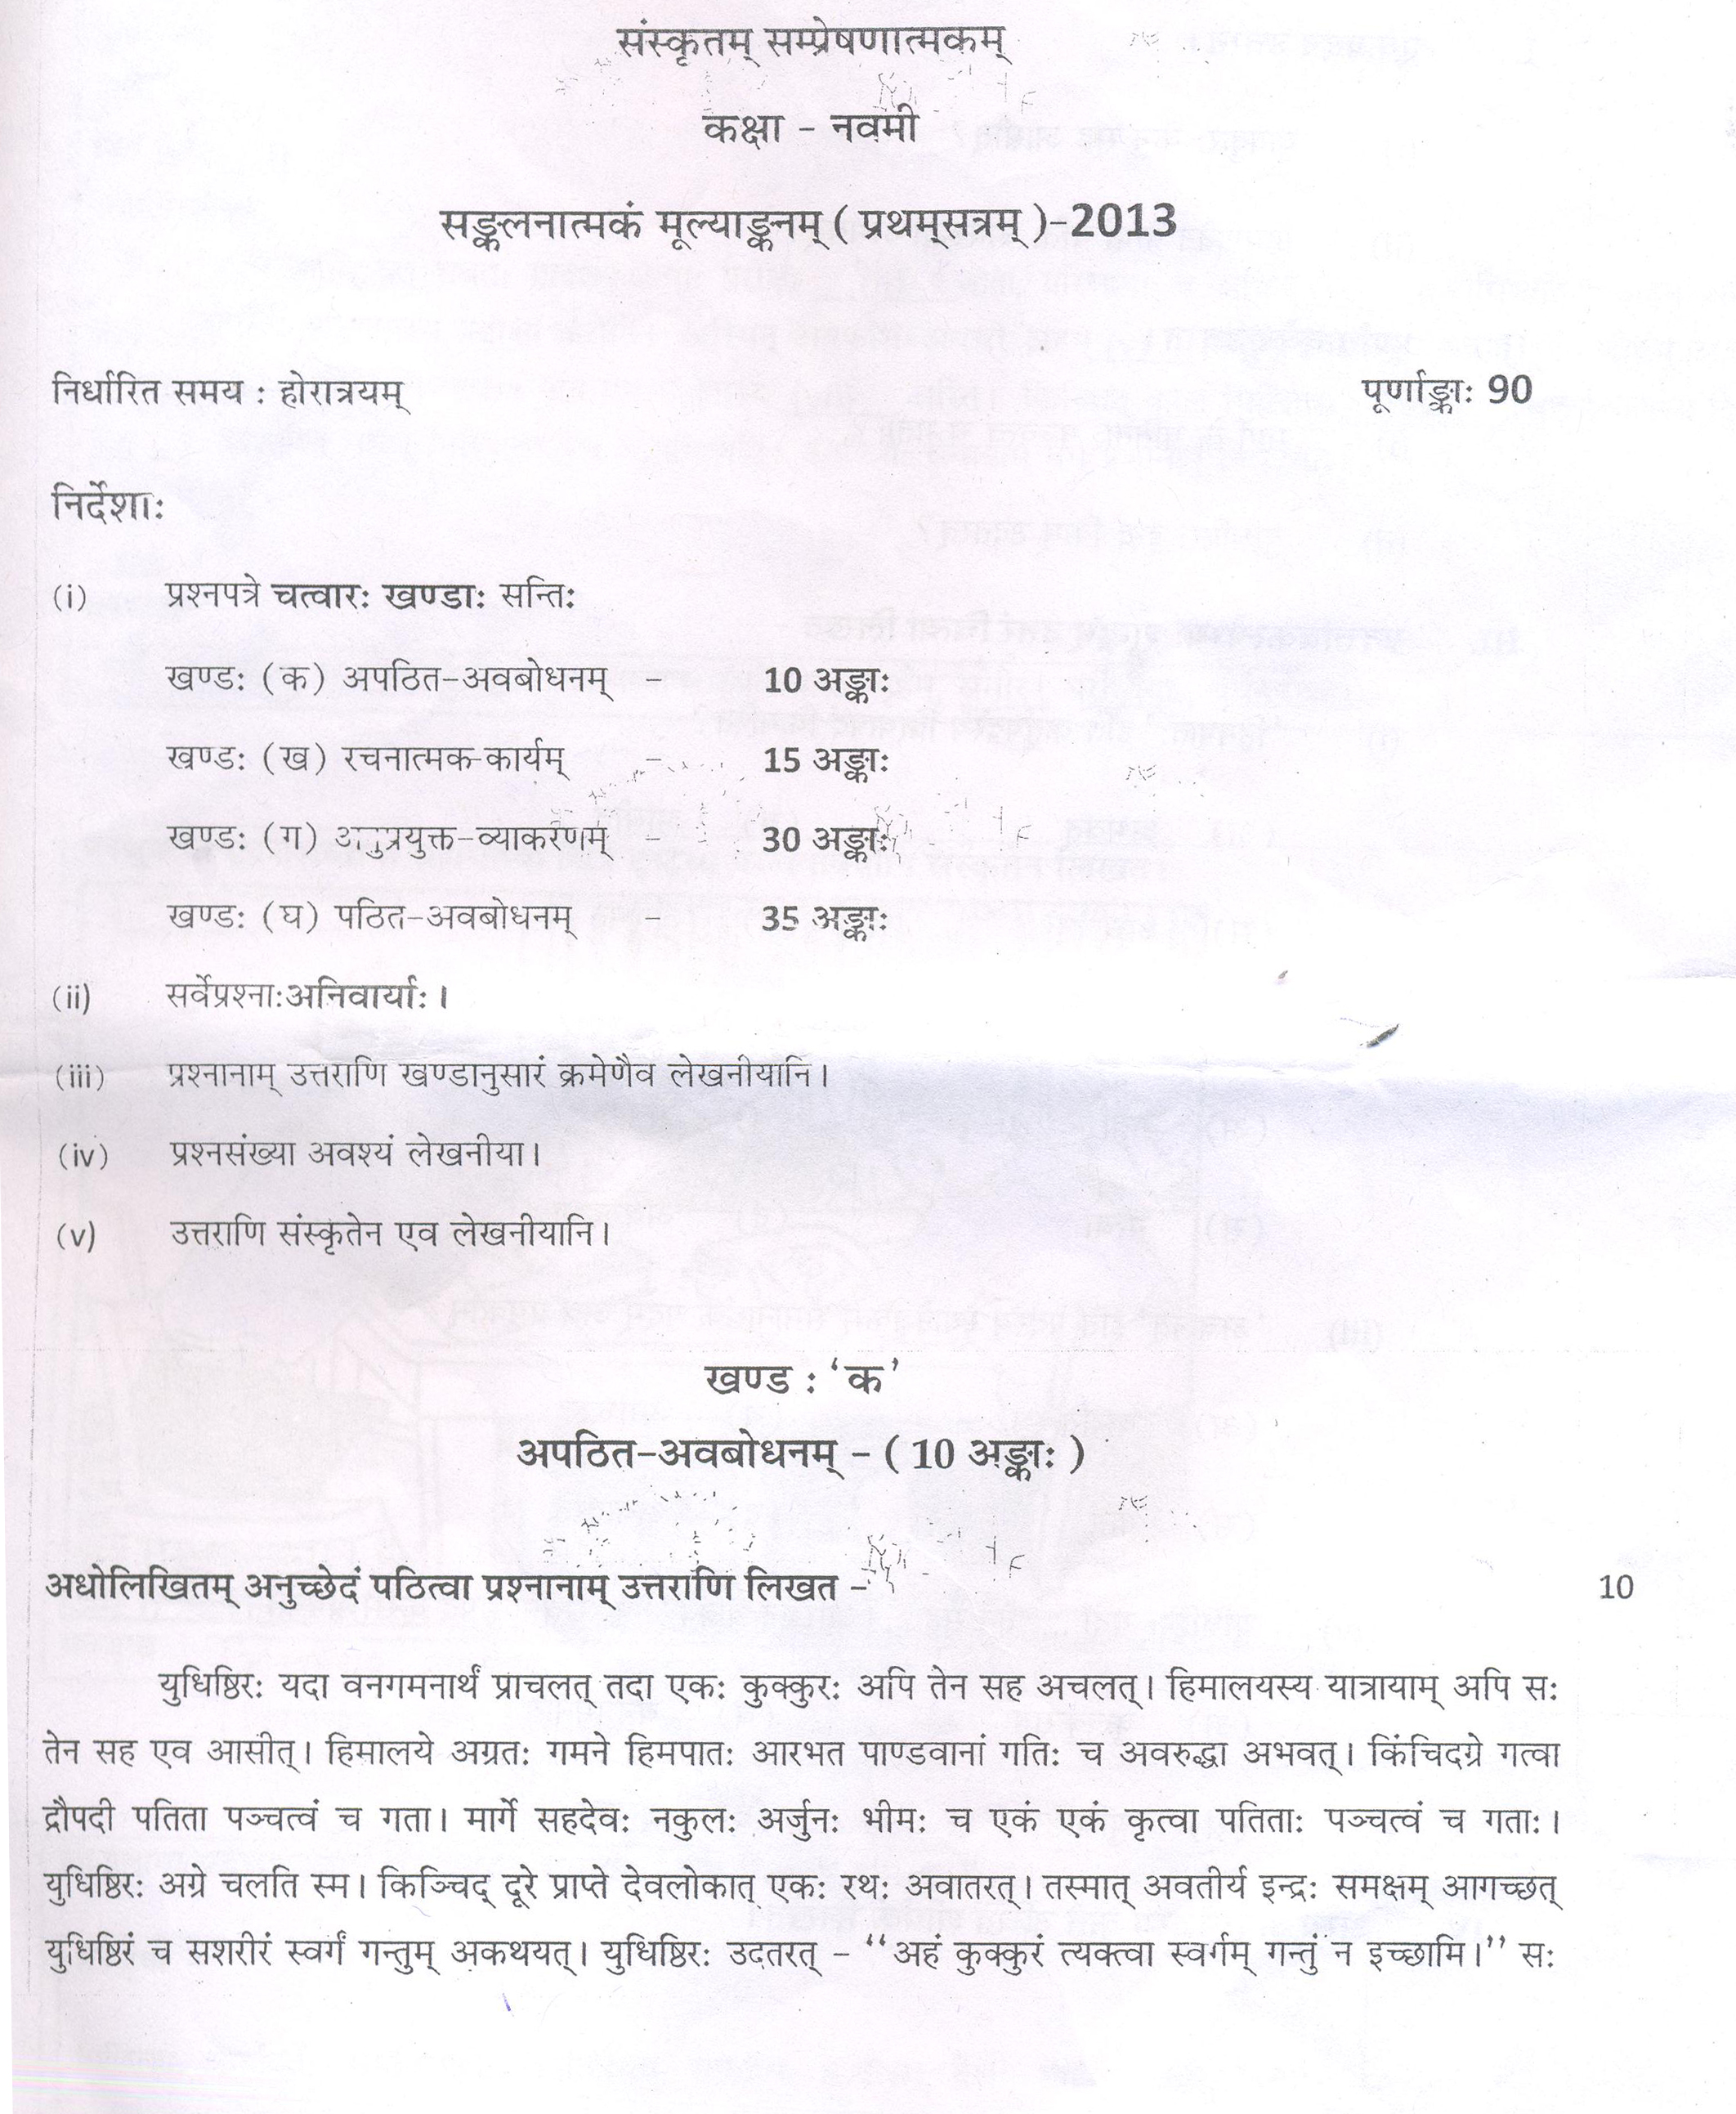 Sixth term examination paper 2013